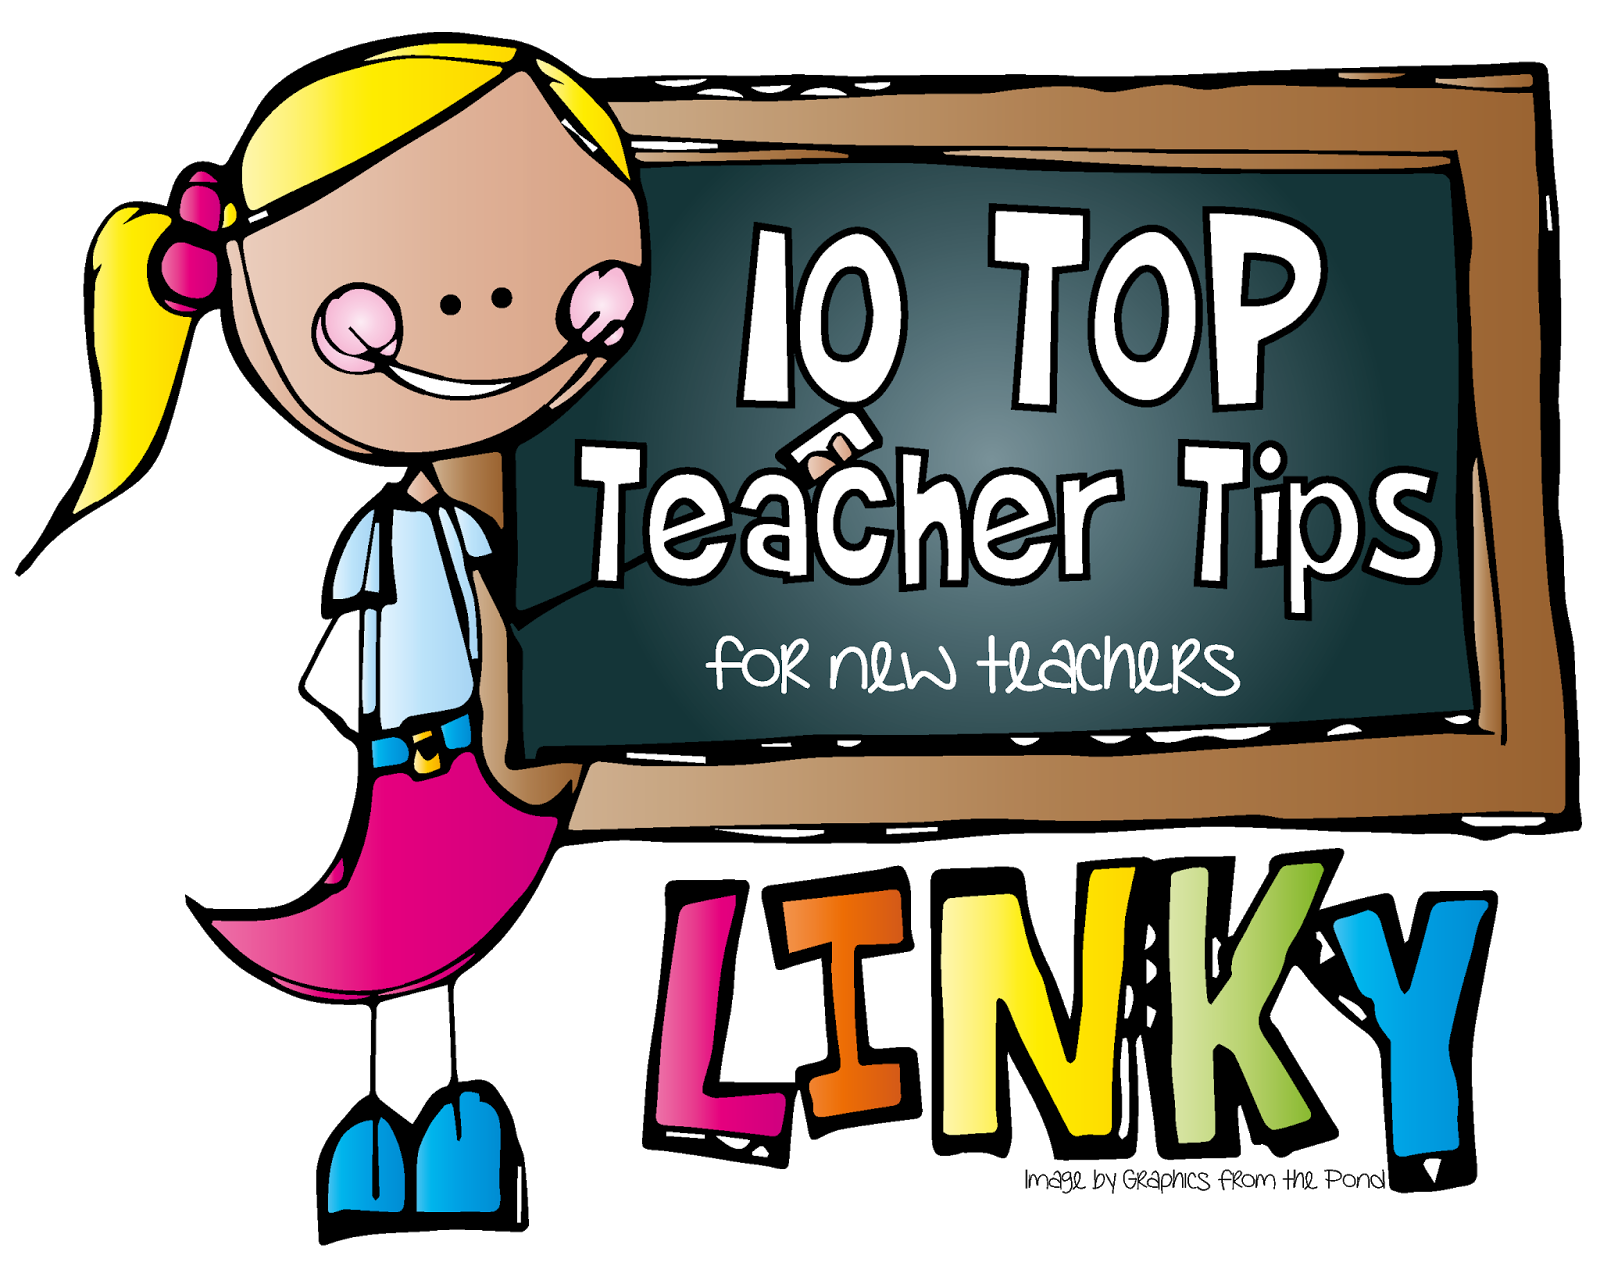 http://lovelaughterandlearninginprep.blogspot.com.au/2014/01/10-top-tips-for-new-teachers-linky-party.html?utm_source=feedburner&utm_medium=email&utm_campaign=Feed:+LoveLaughterAndLearningInPrep+%28Love,+Laughter+and+Learning+in+Prep!%29